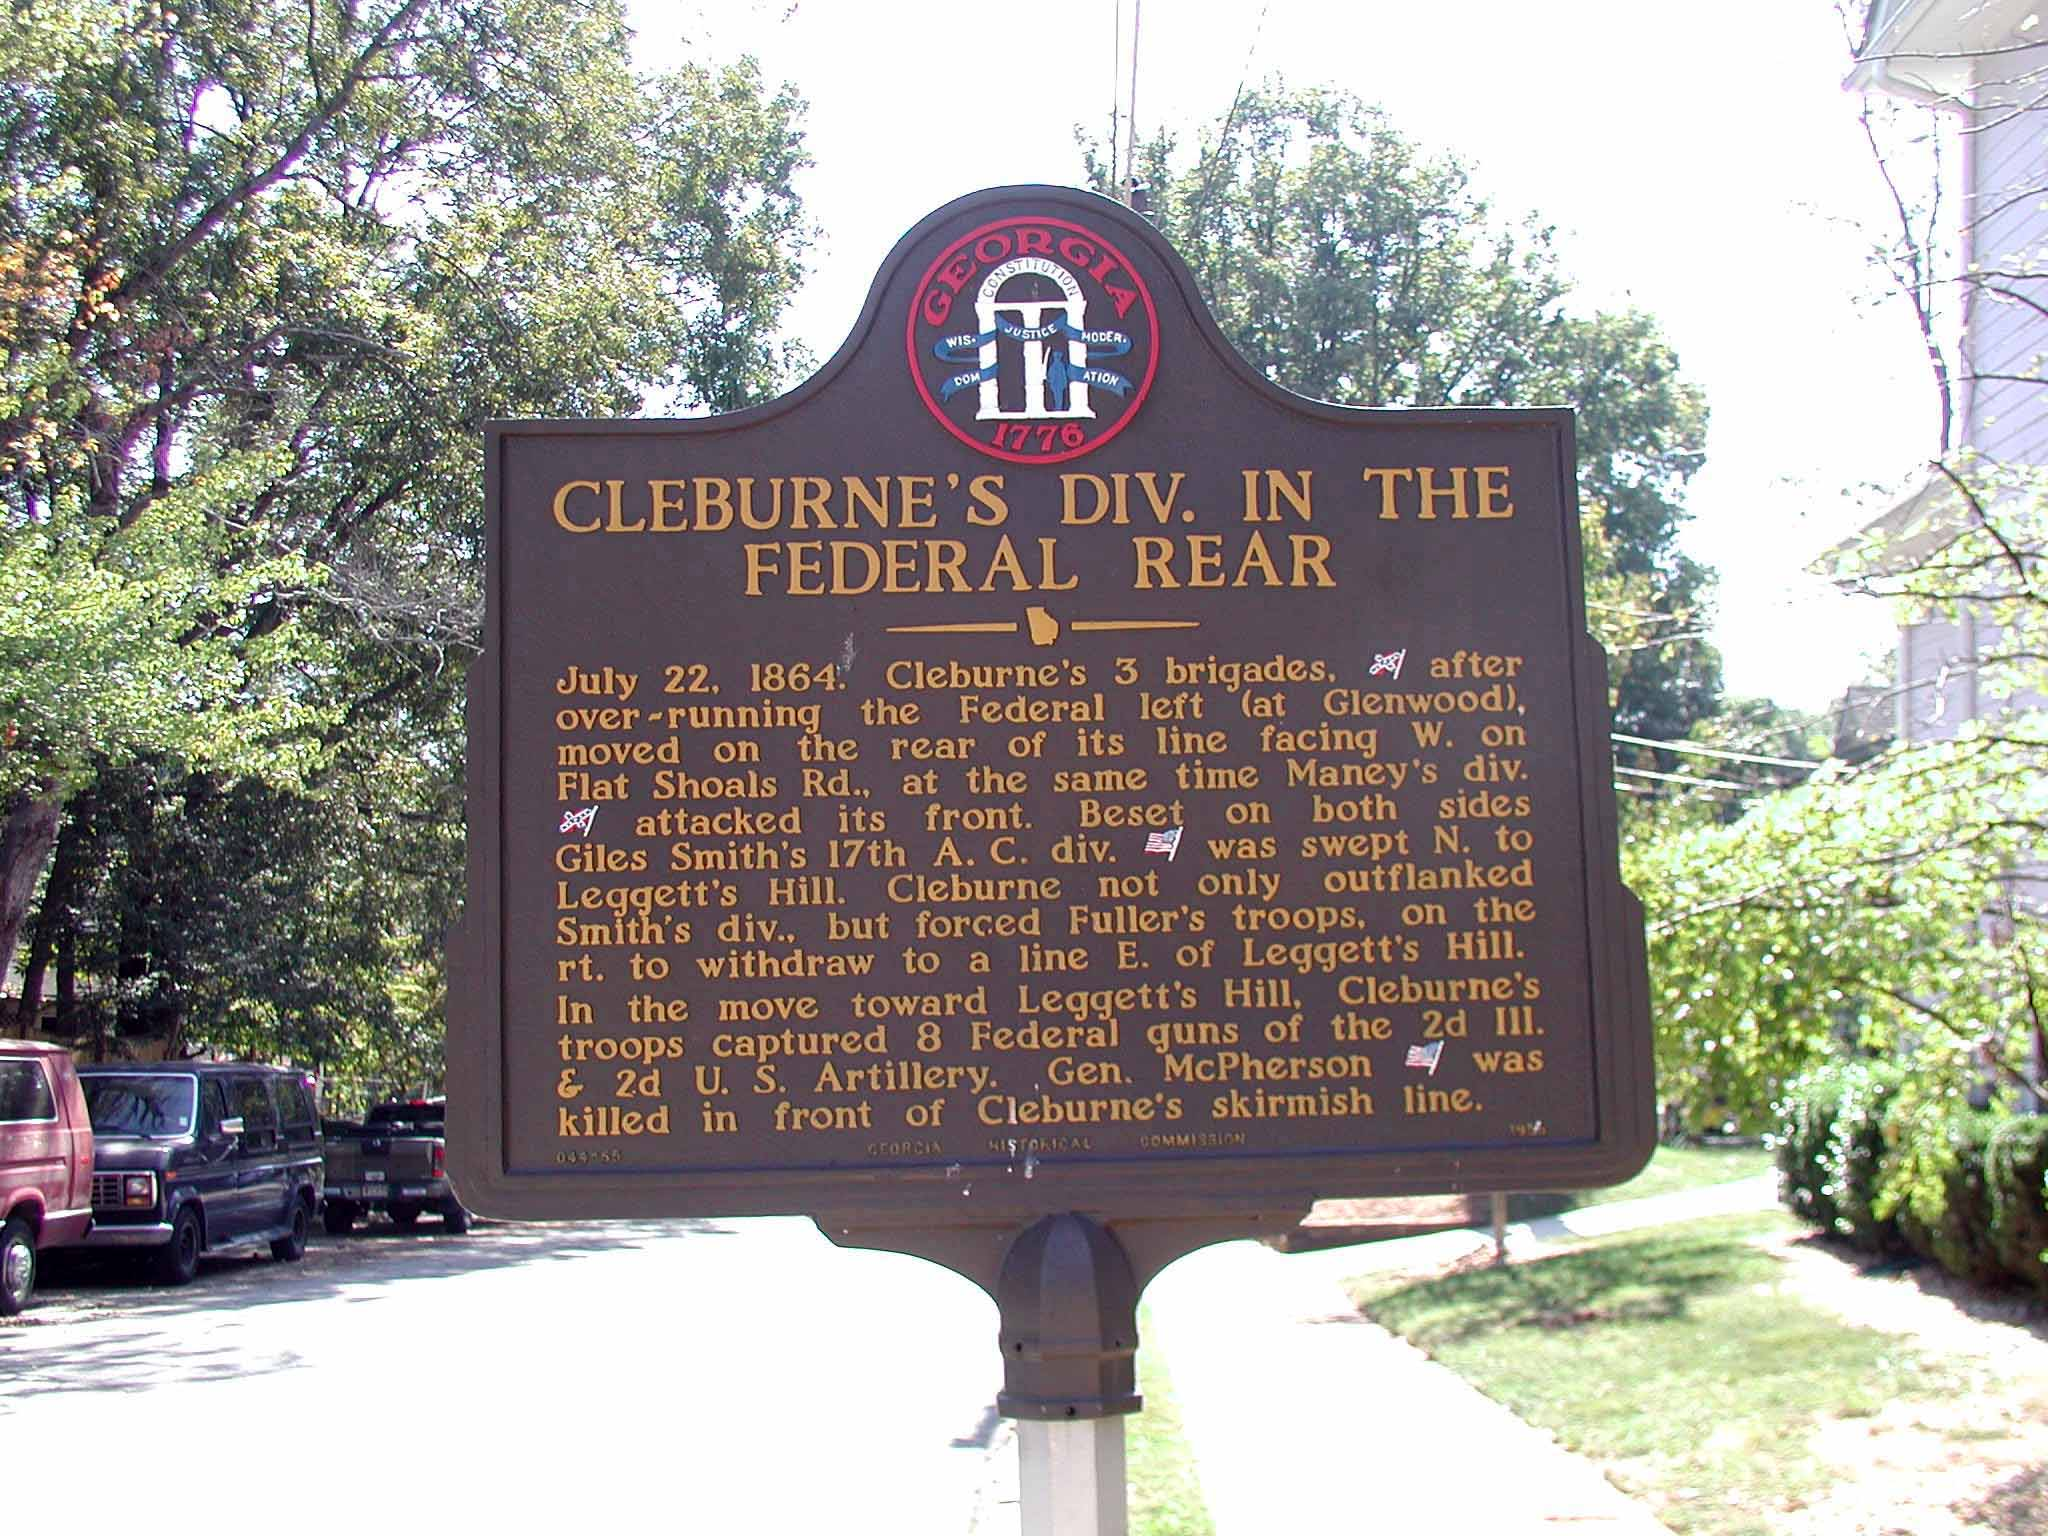 Cleburne's Division in the Federal Rear, click photo to enlarge.